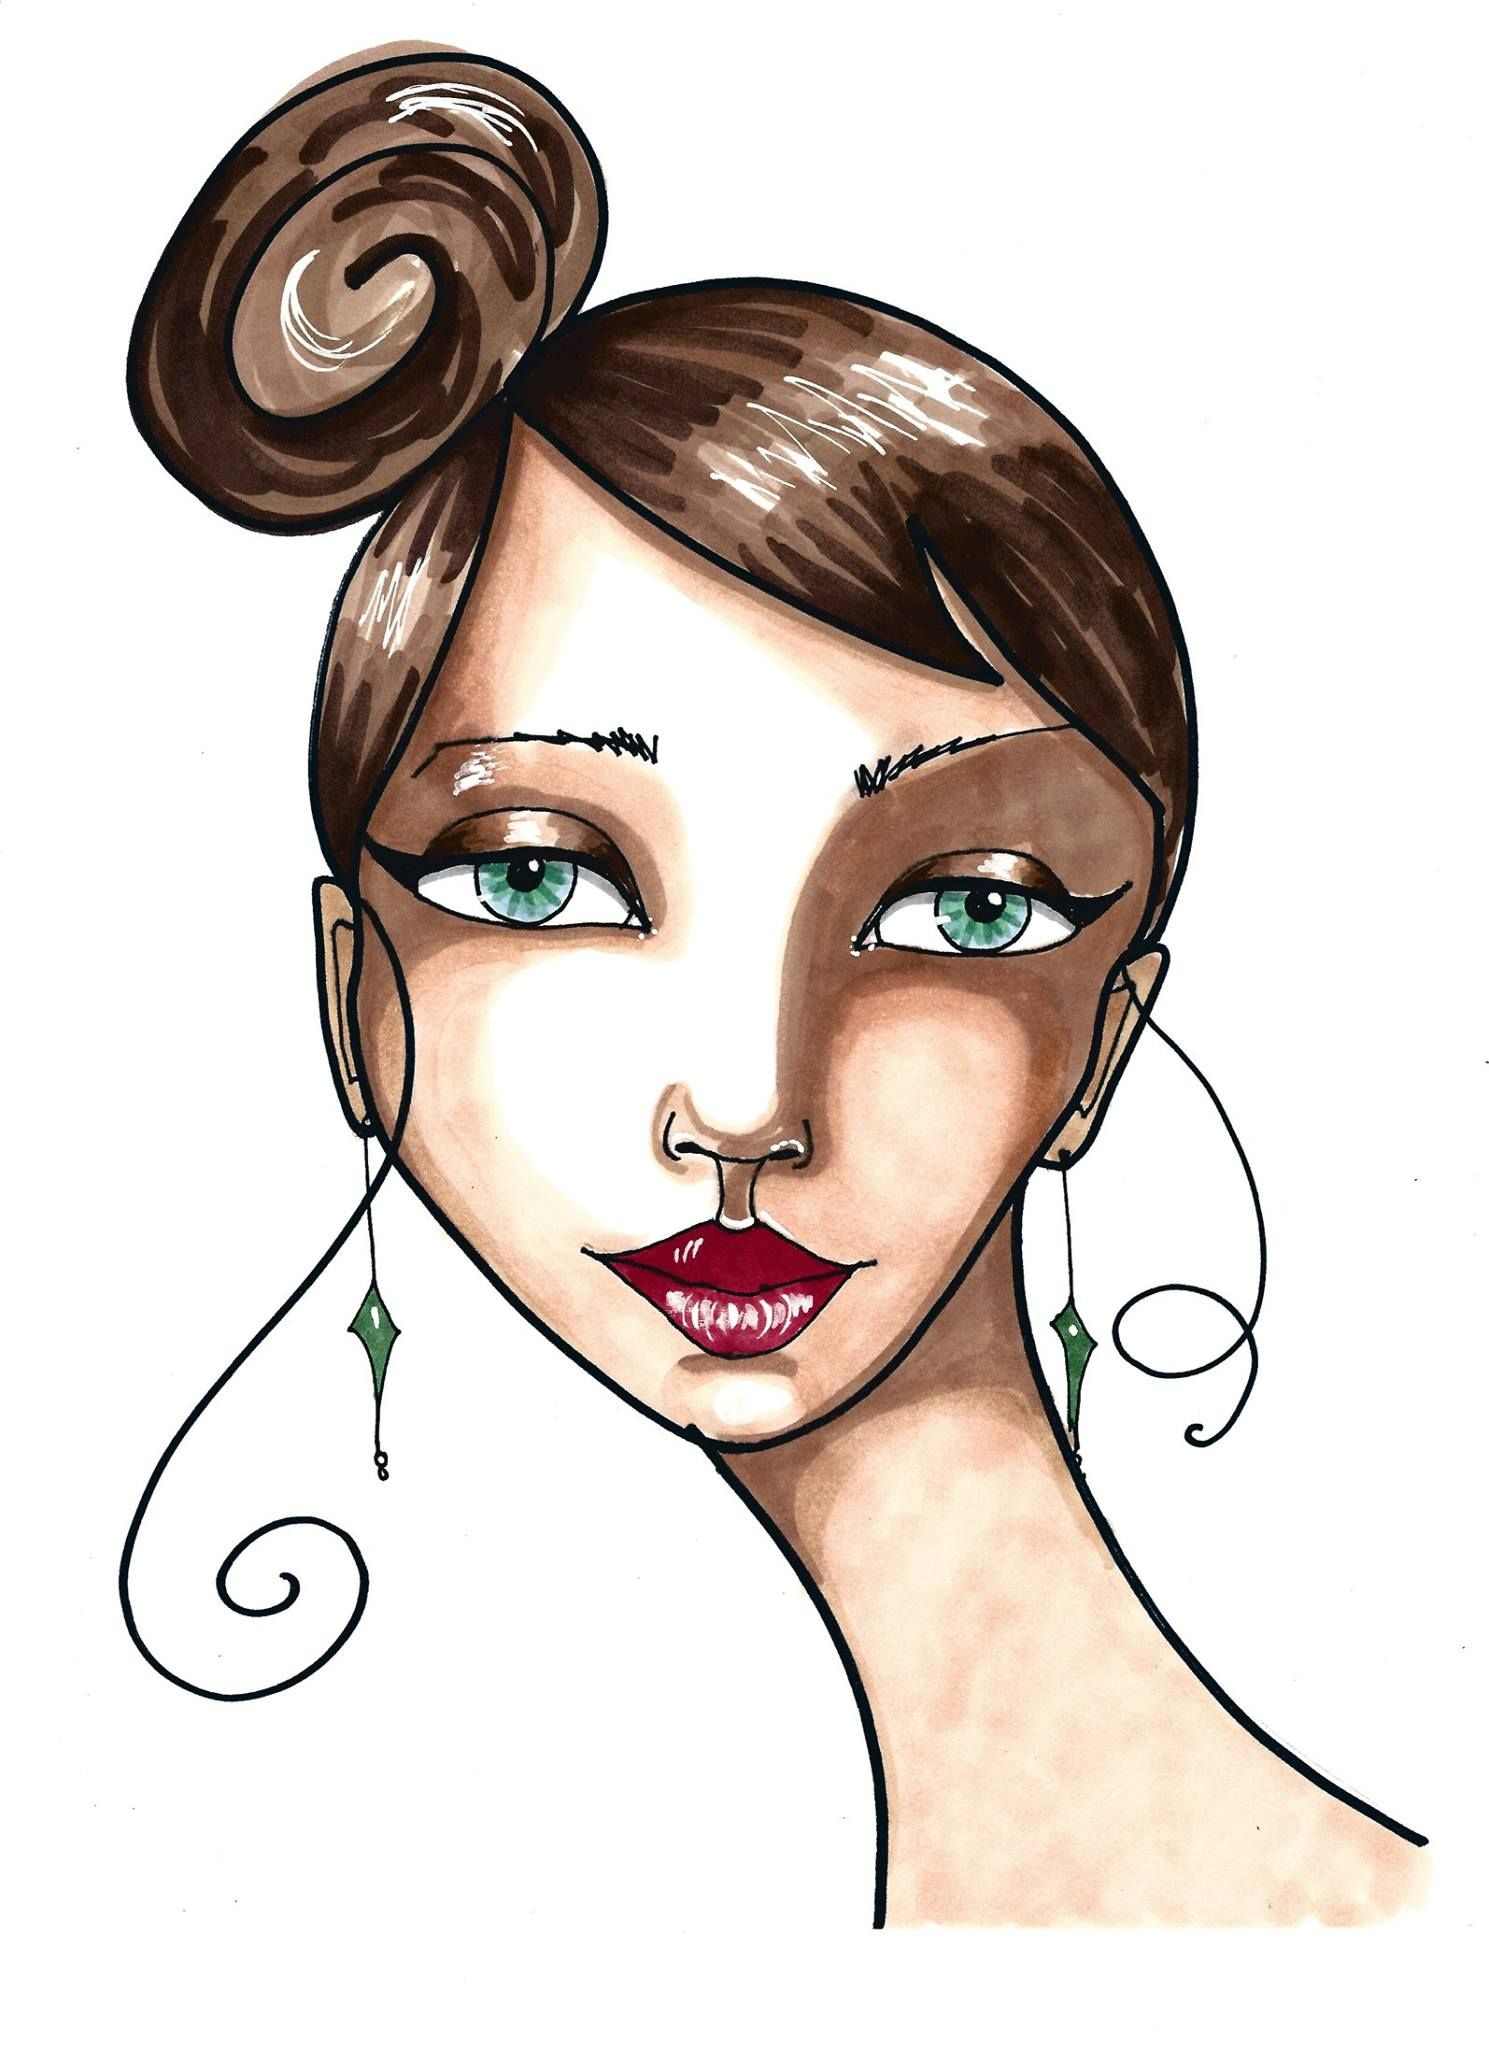 Marker illustration ecourse for beginners shading faces marker drawings marker art drawing with